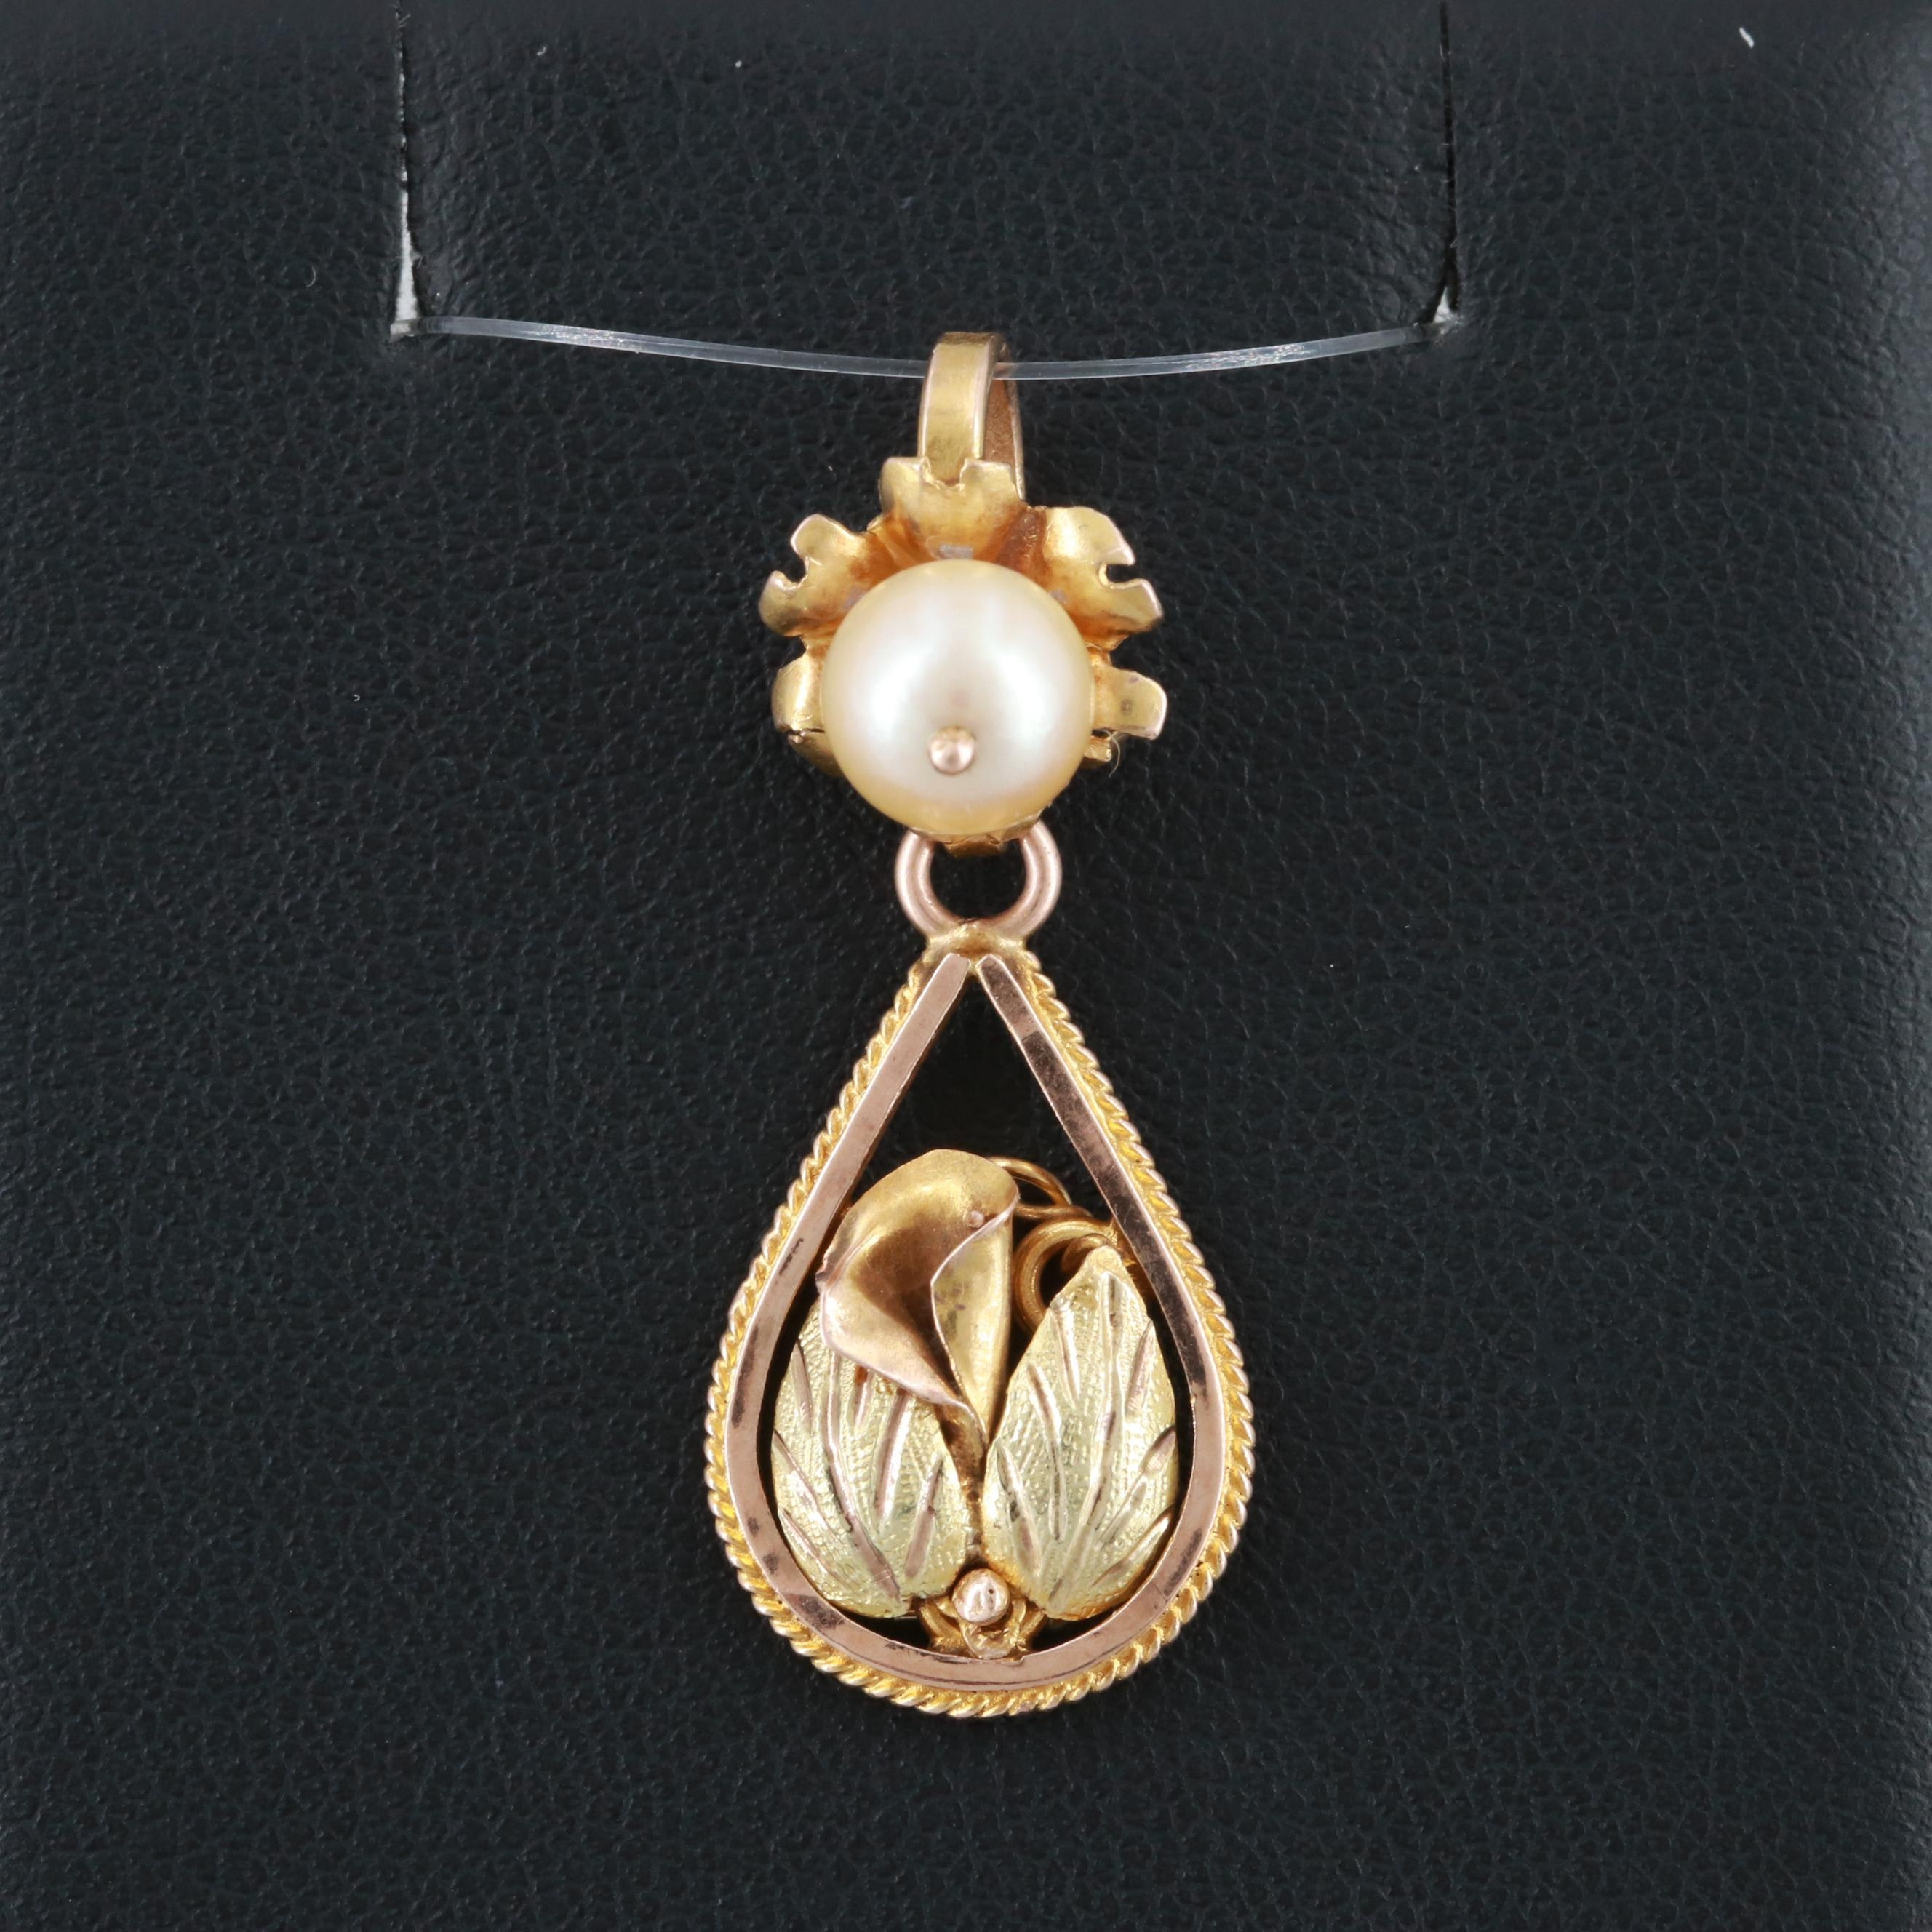 Vintage 10K Yellow Gold Cultured Pearl Pendant with Calla Lilly Motif